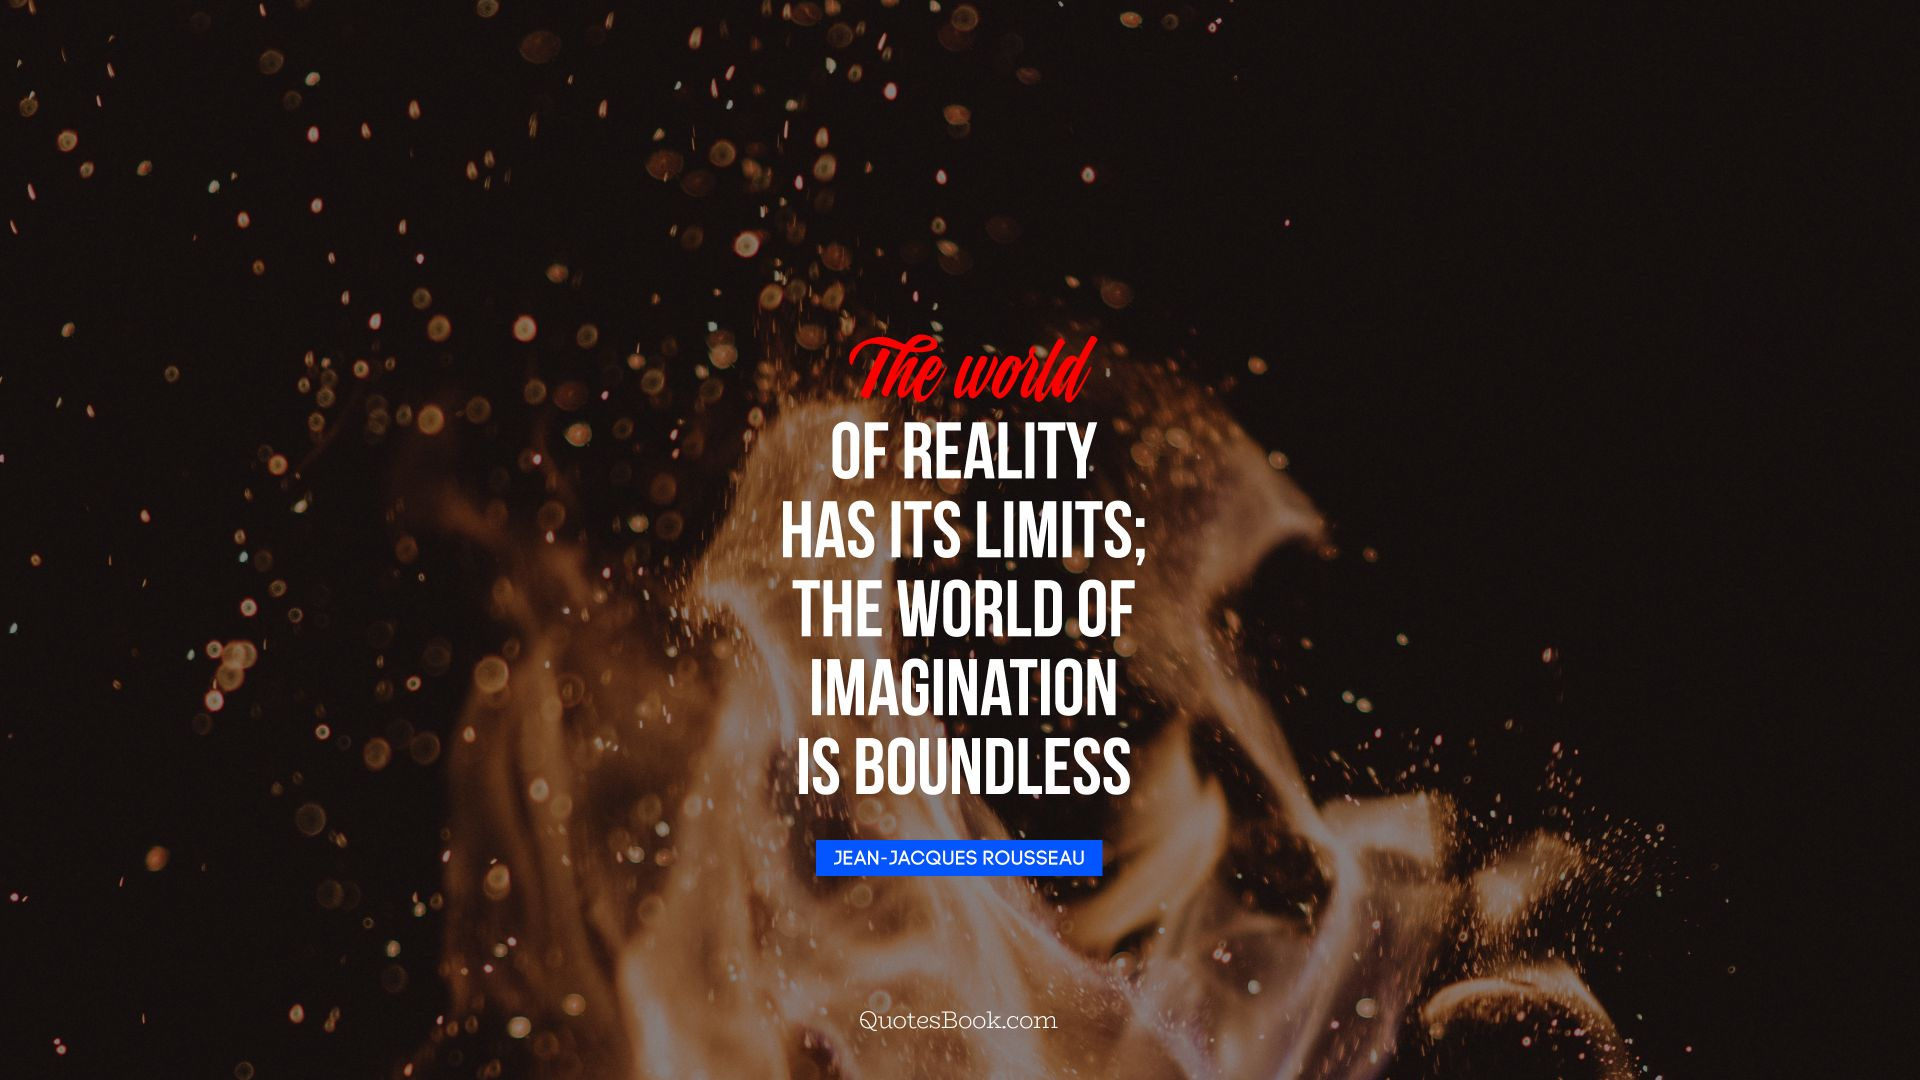 The world of reality has its limits; the world of imagination is boundless. - Quote by Jean-Jacques Rousseau